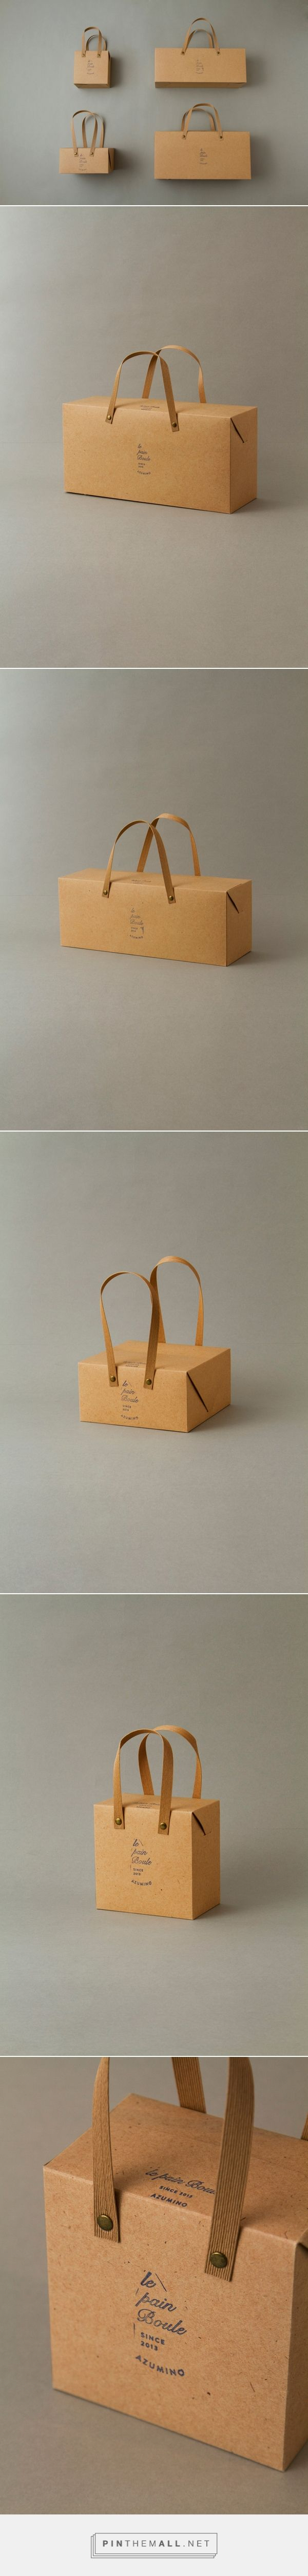 Artless Inc. le pain boule new gift box #packaging curated by Packaging Diva PD created via http://www.artless.co.jp/alog/?s=le+pain+boule&x=0&y=0